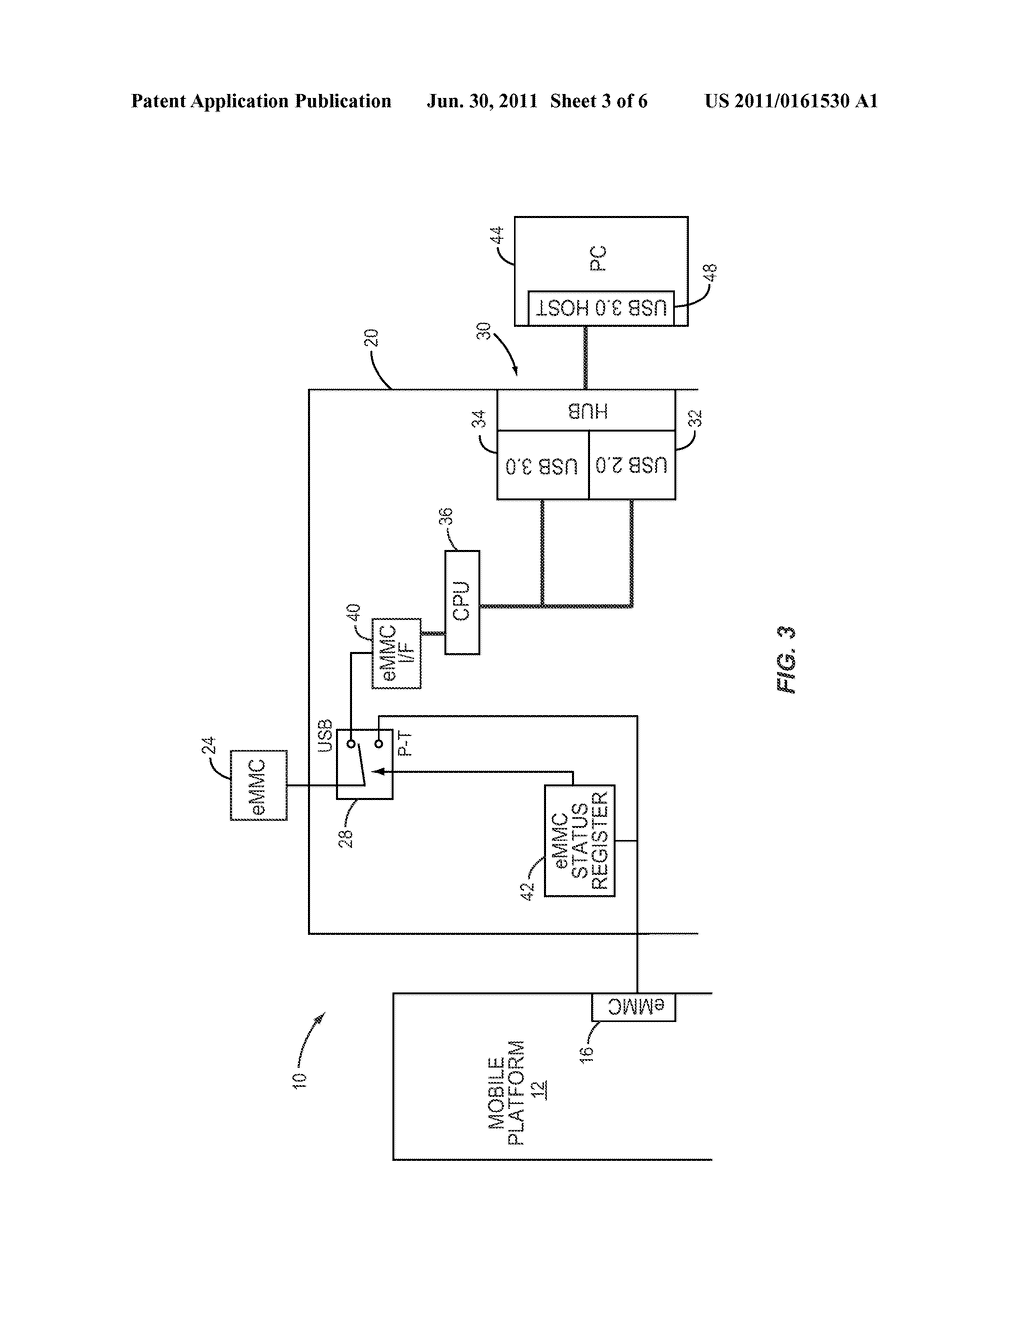 Usb 30 Support In Mobile Platform With 20 Interface Diagram 2 0 Schematic And Image 04